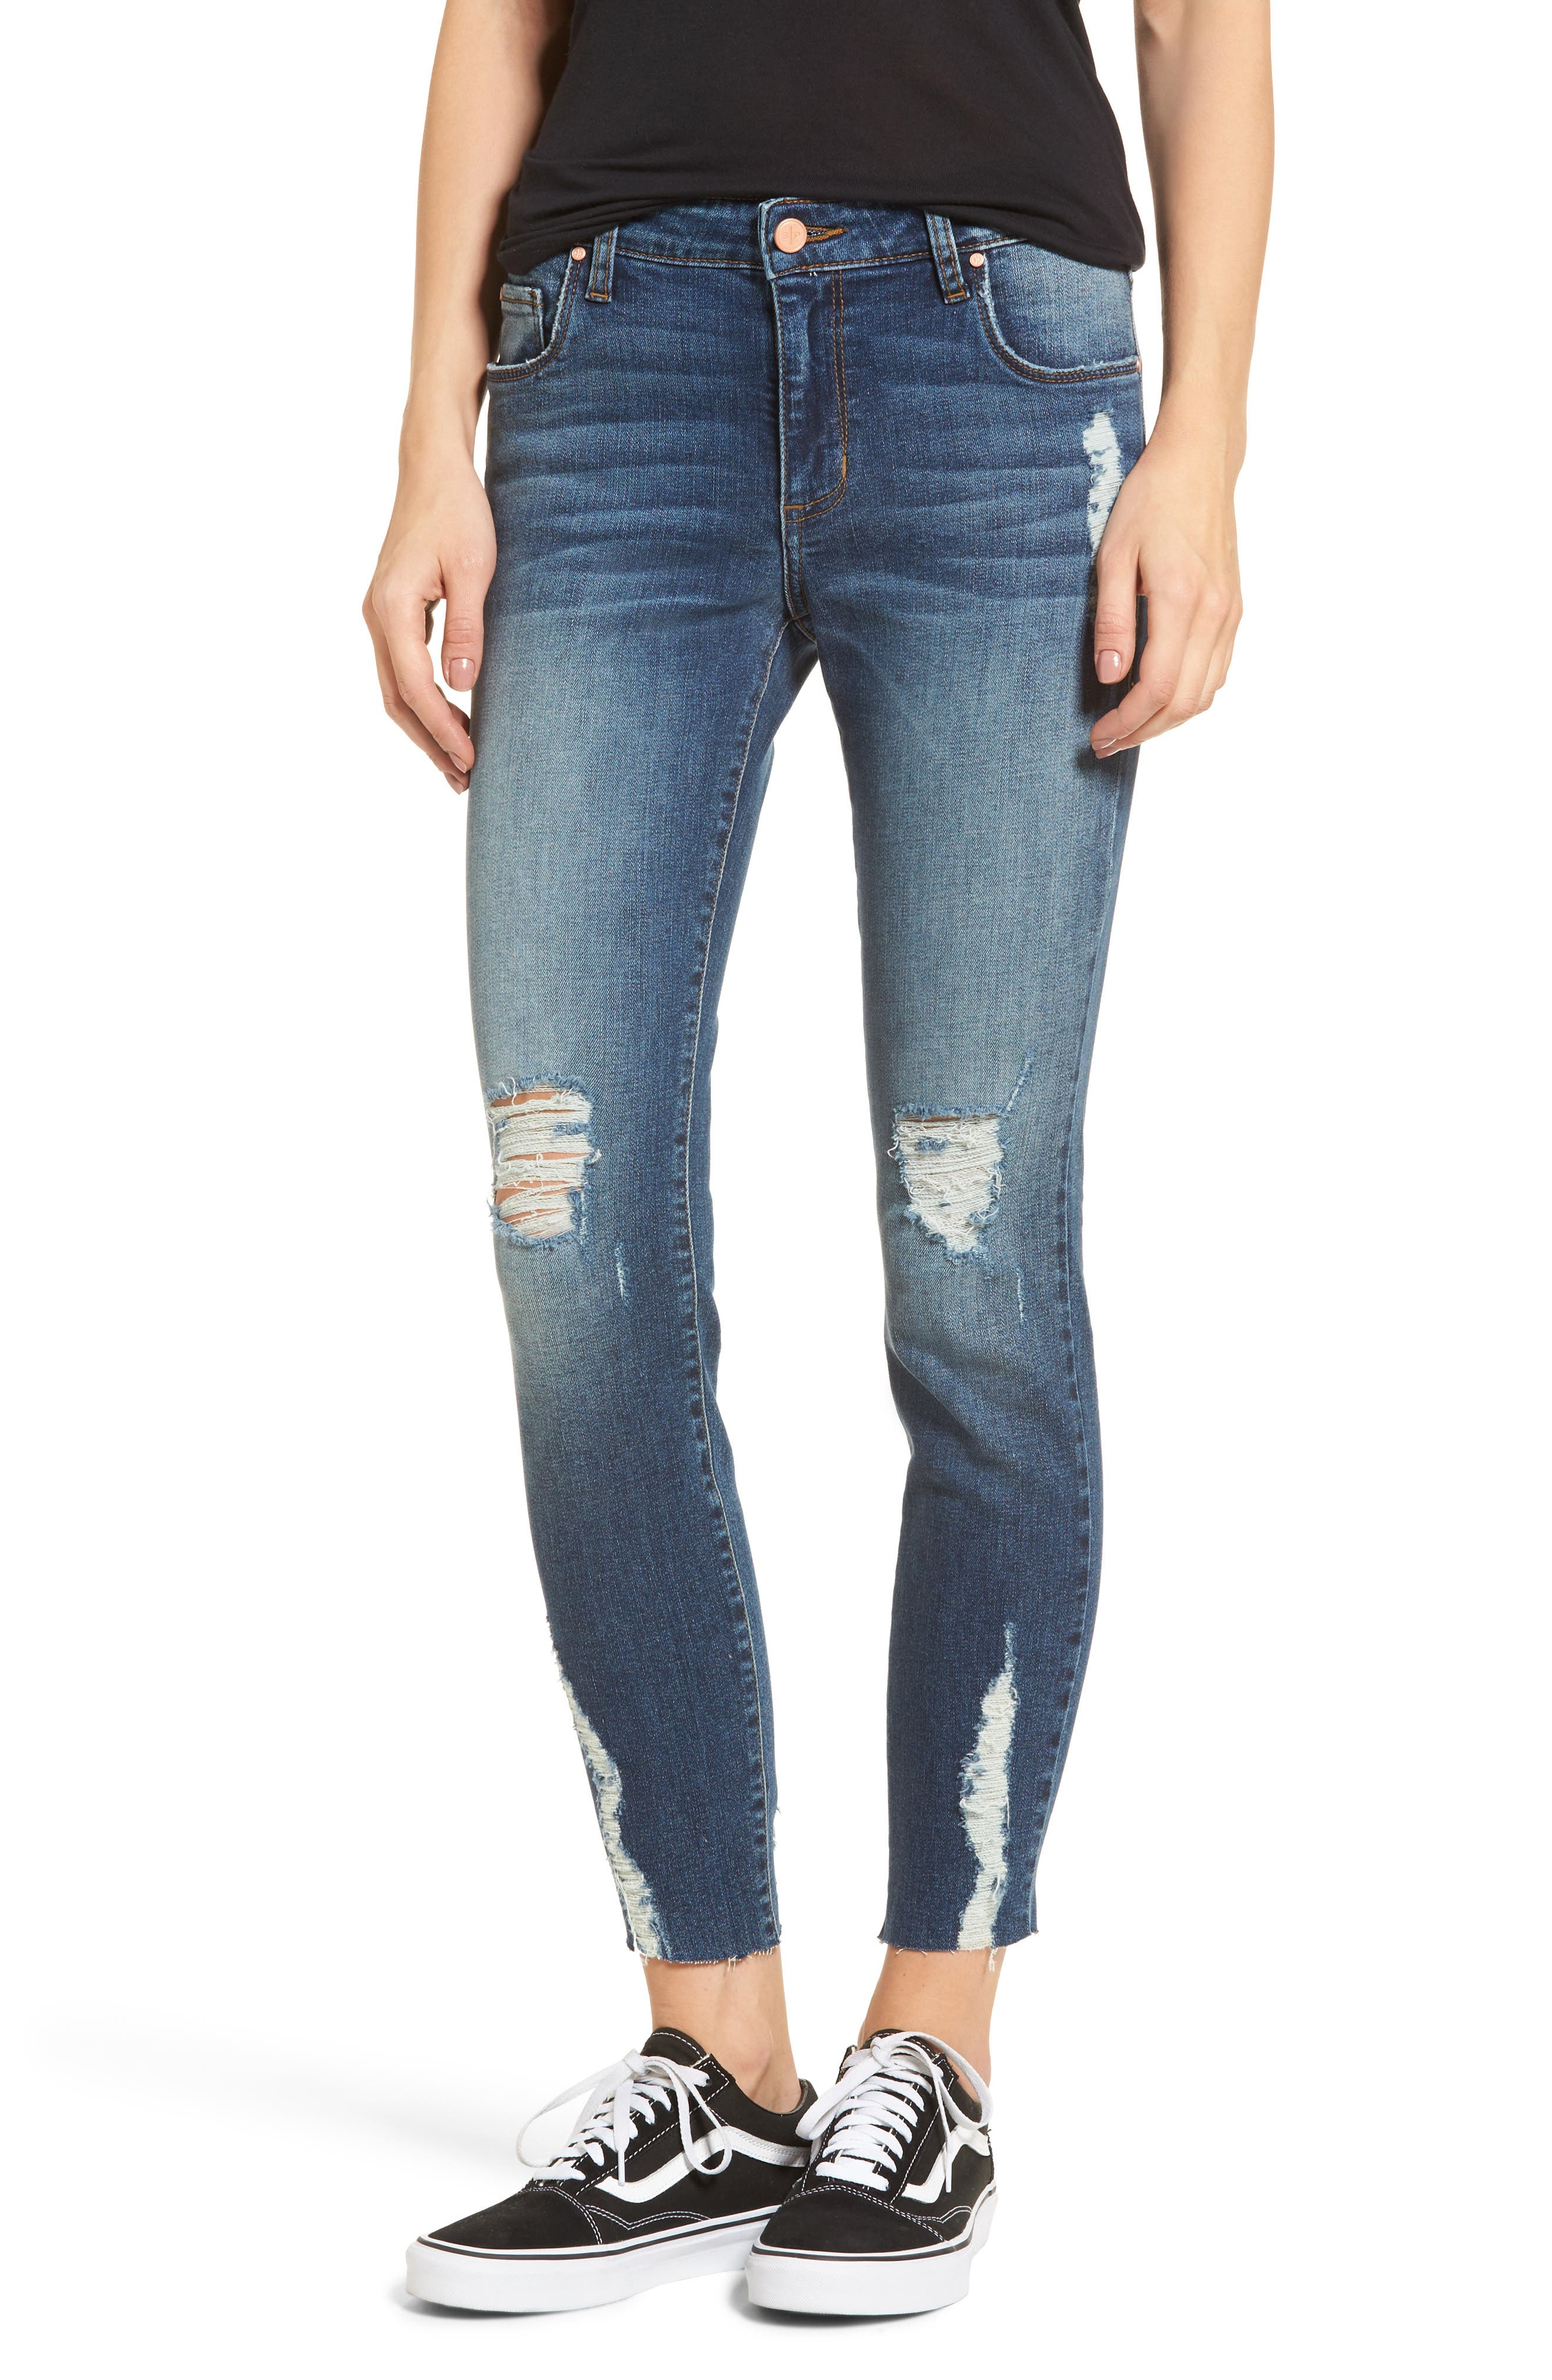 Decon Distressed Skinny Jeans,                             Main thumbnail 1, color,                             Vintage